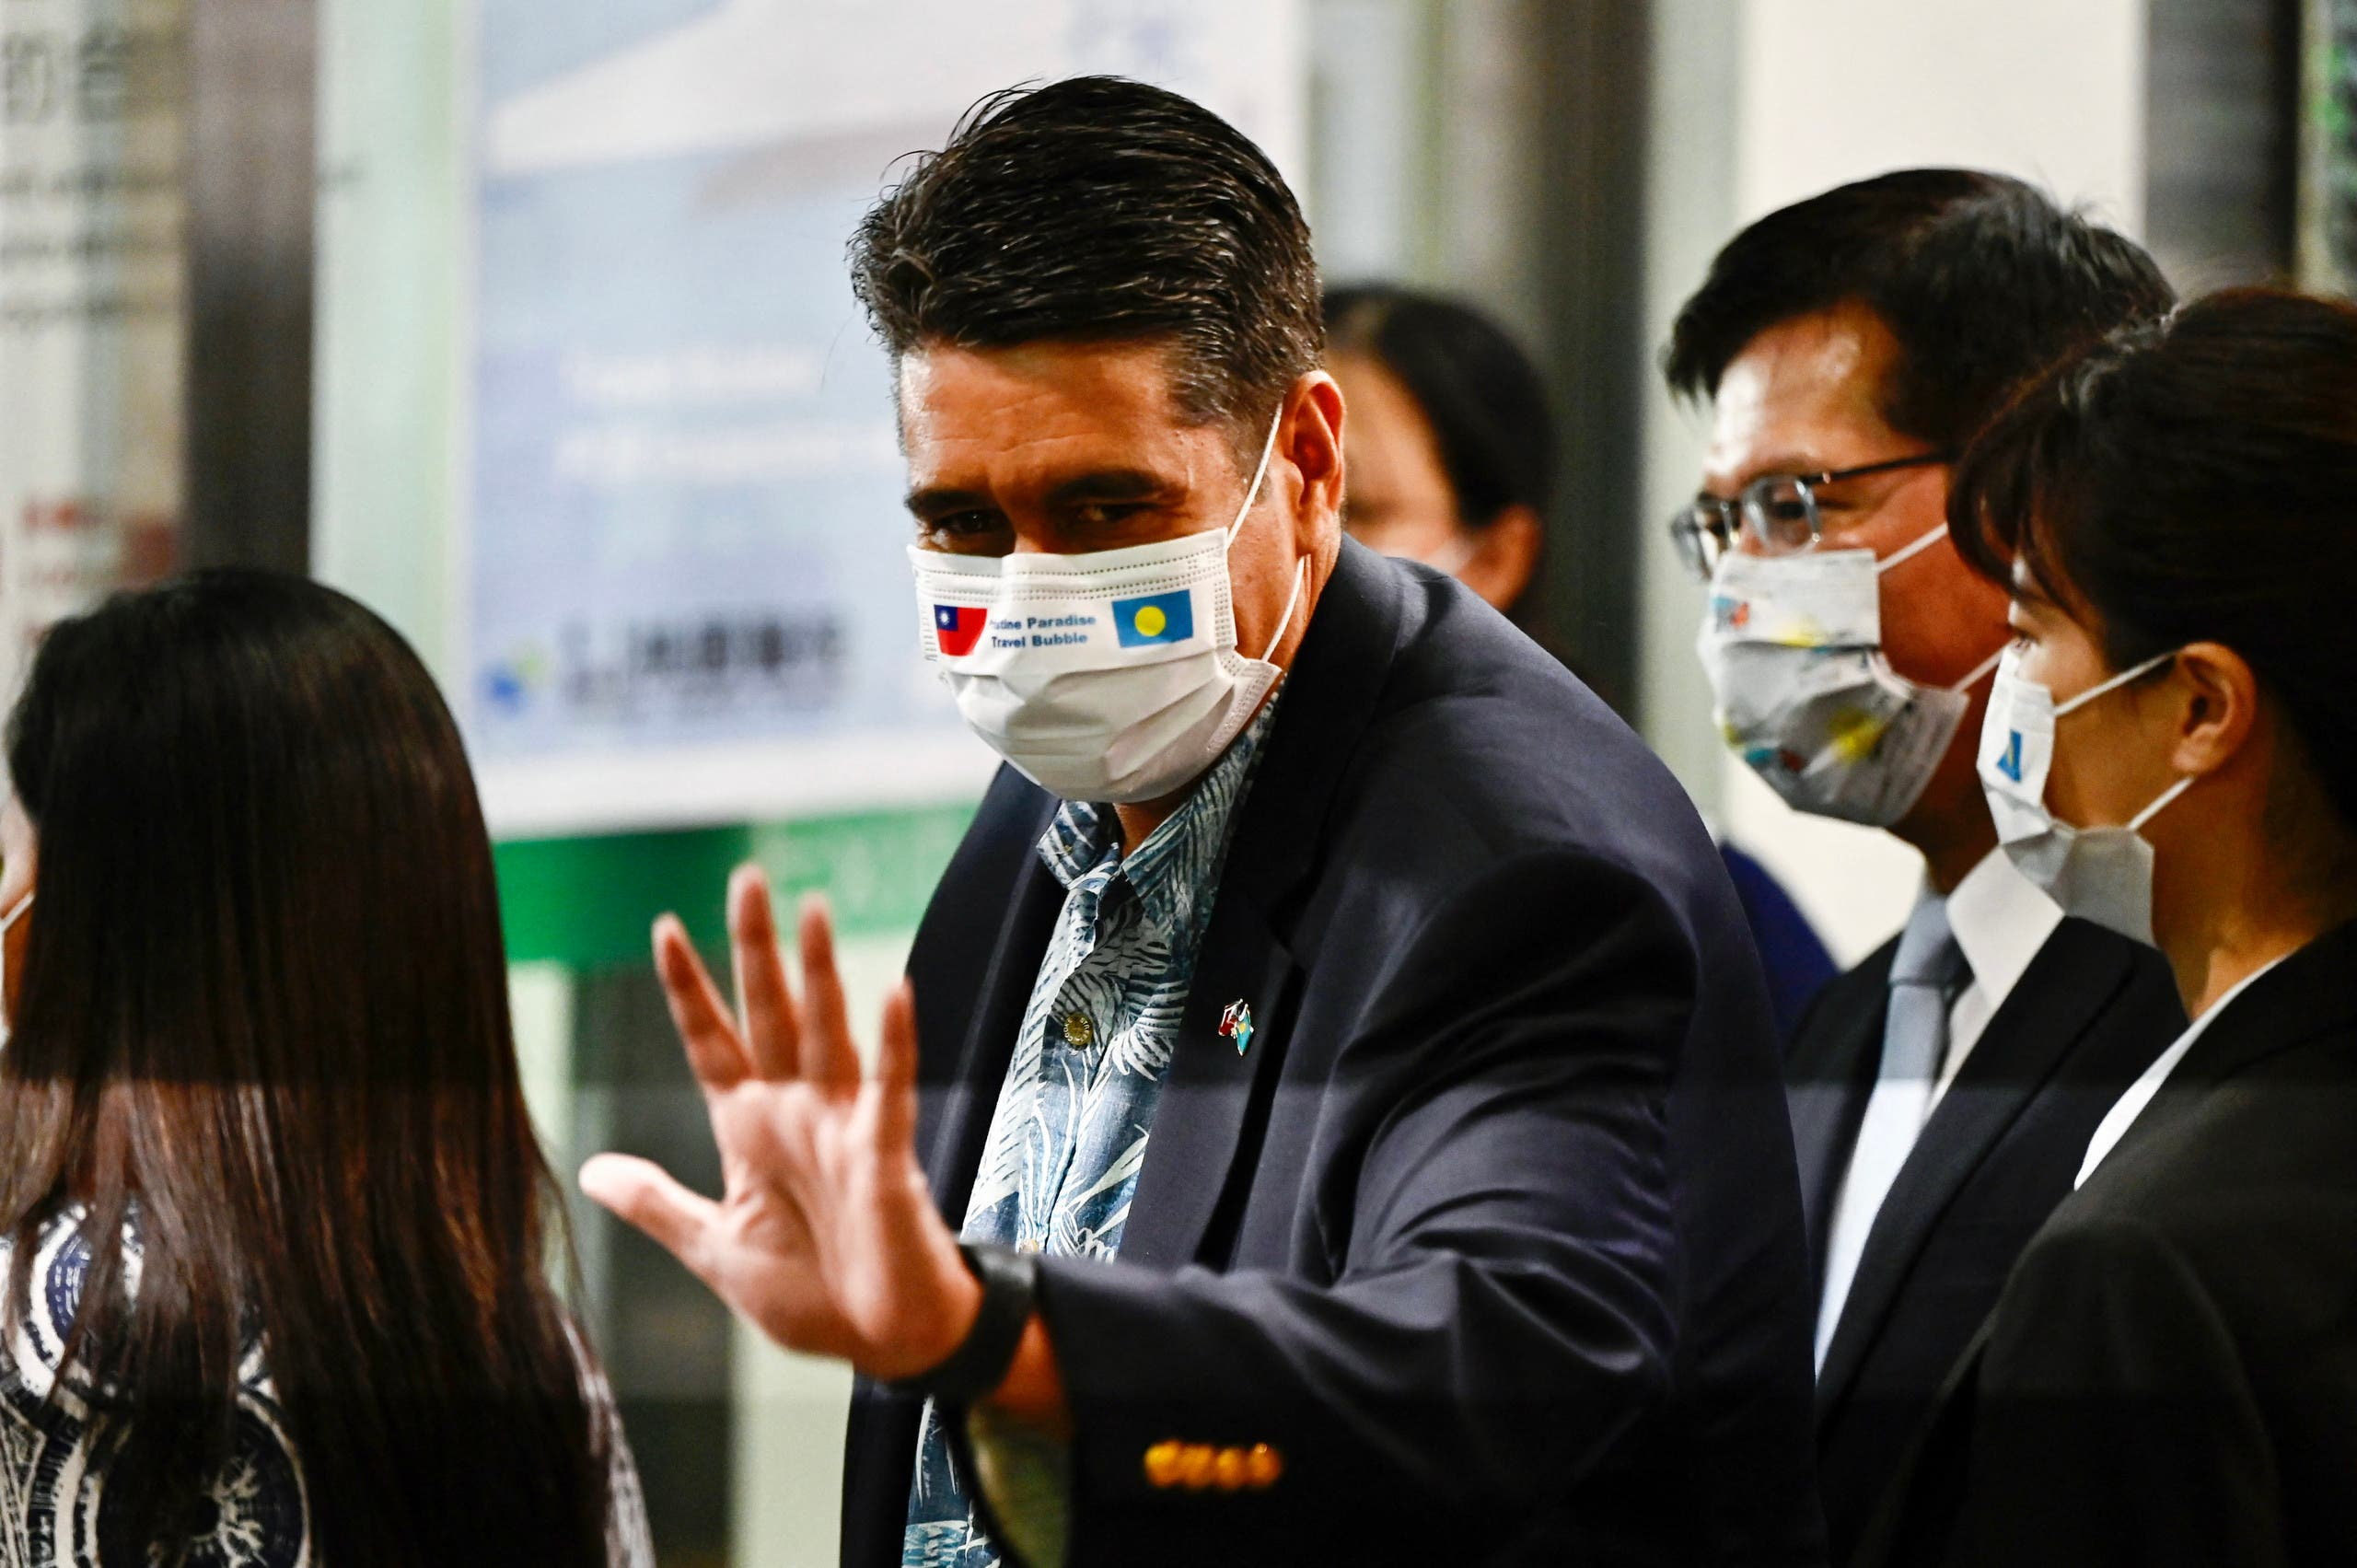 Palau President Surangel Whipps (C) waves as he departs from Taoyuan International Airport near Taipei on April 1, 2021, as Taiwanese tourists headed to Palau under the first travel bubble in Indo-Pacific Asia. (File photo: AFP)